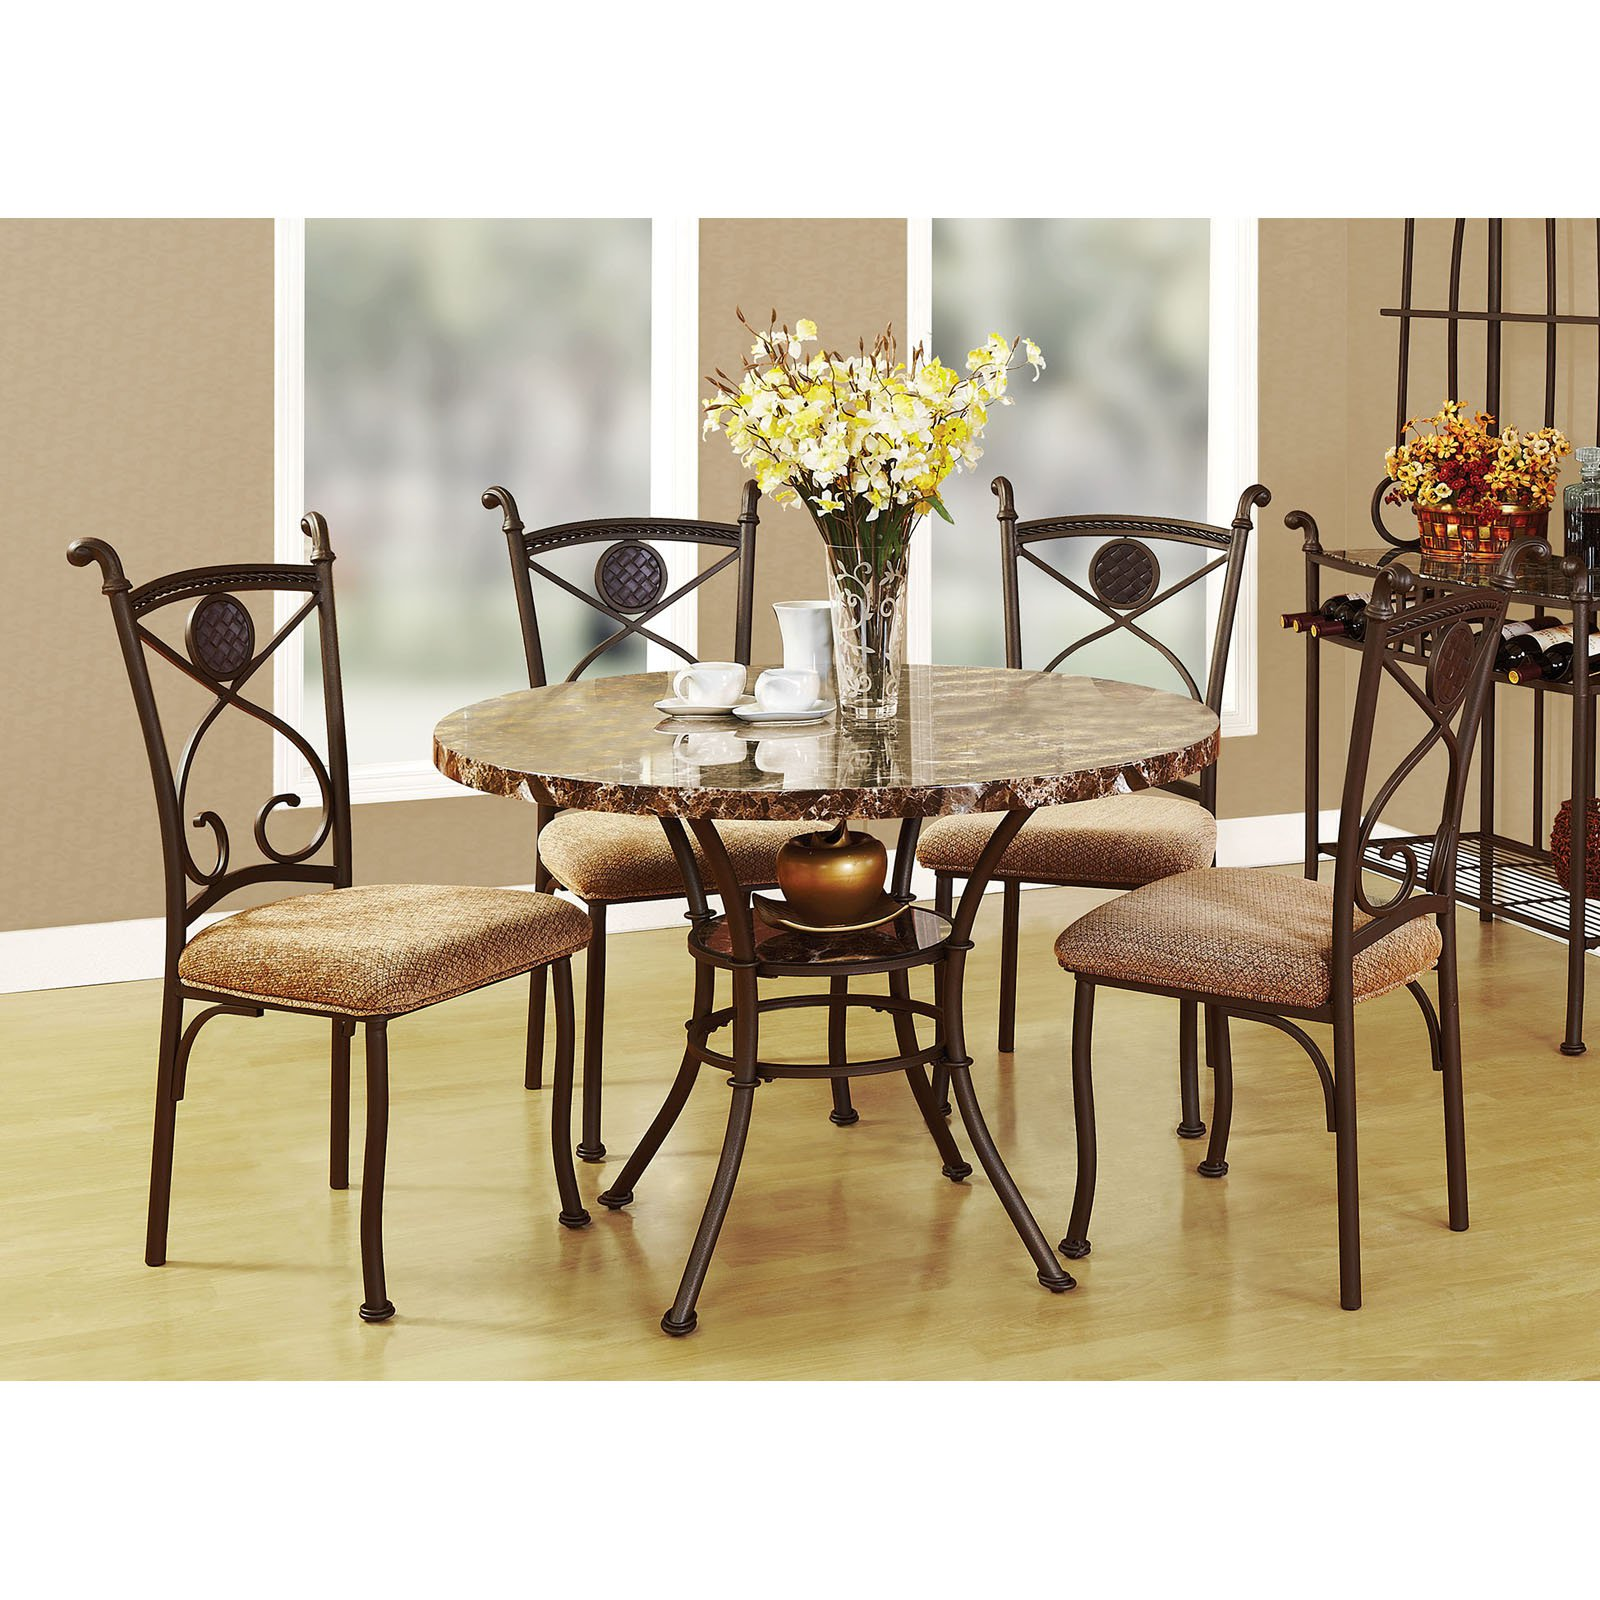 Acme Furniture Kleef 5 Piece Round Dining Table Set  sc 1 st  Walmart & Acme Furniture Kleef 5 Piece Round Dining Table Set - Walmart.com